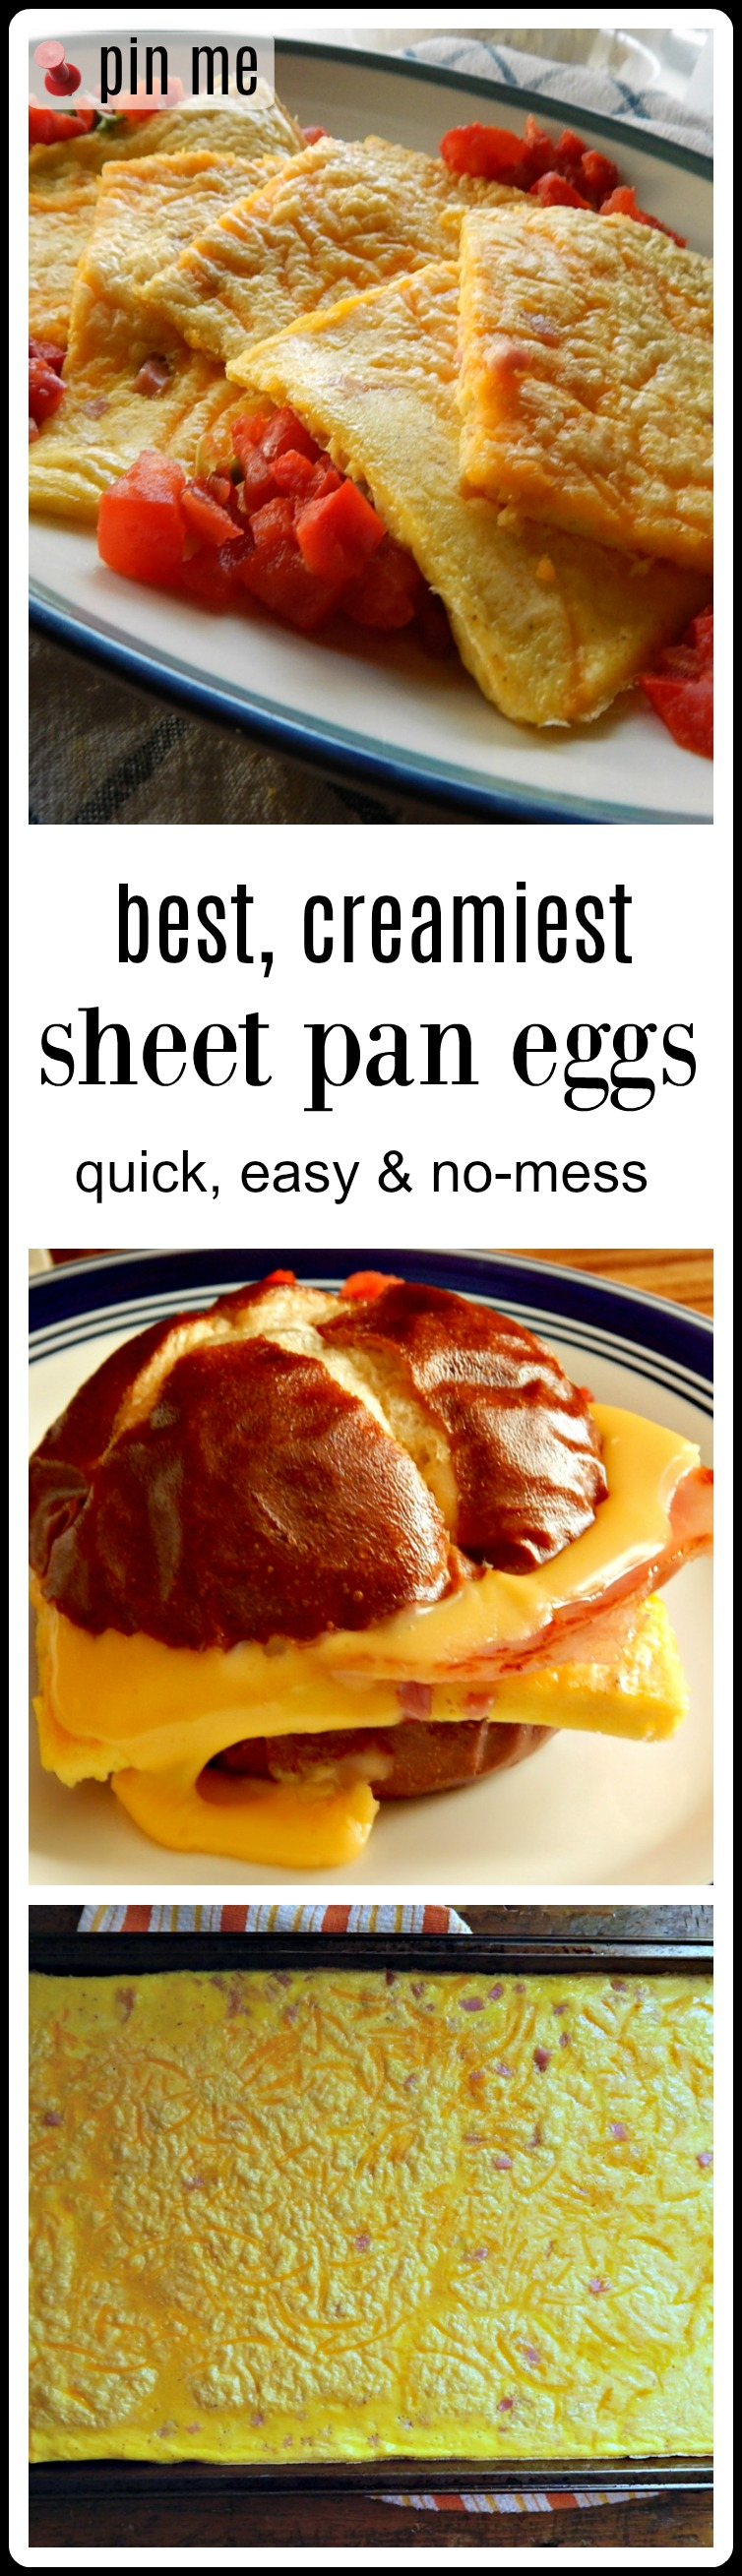 TheBest Creamiest Sheet PanEggs - fast, easy & quick, these turn out creamy & delish. Perfect for Breakfast or make ahead food prep. #SheetPanEggs #BestSheetPanEggs #BestCreamySheetPanEggs